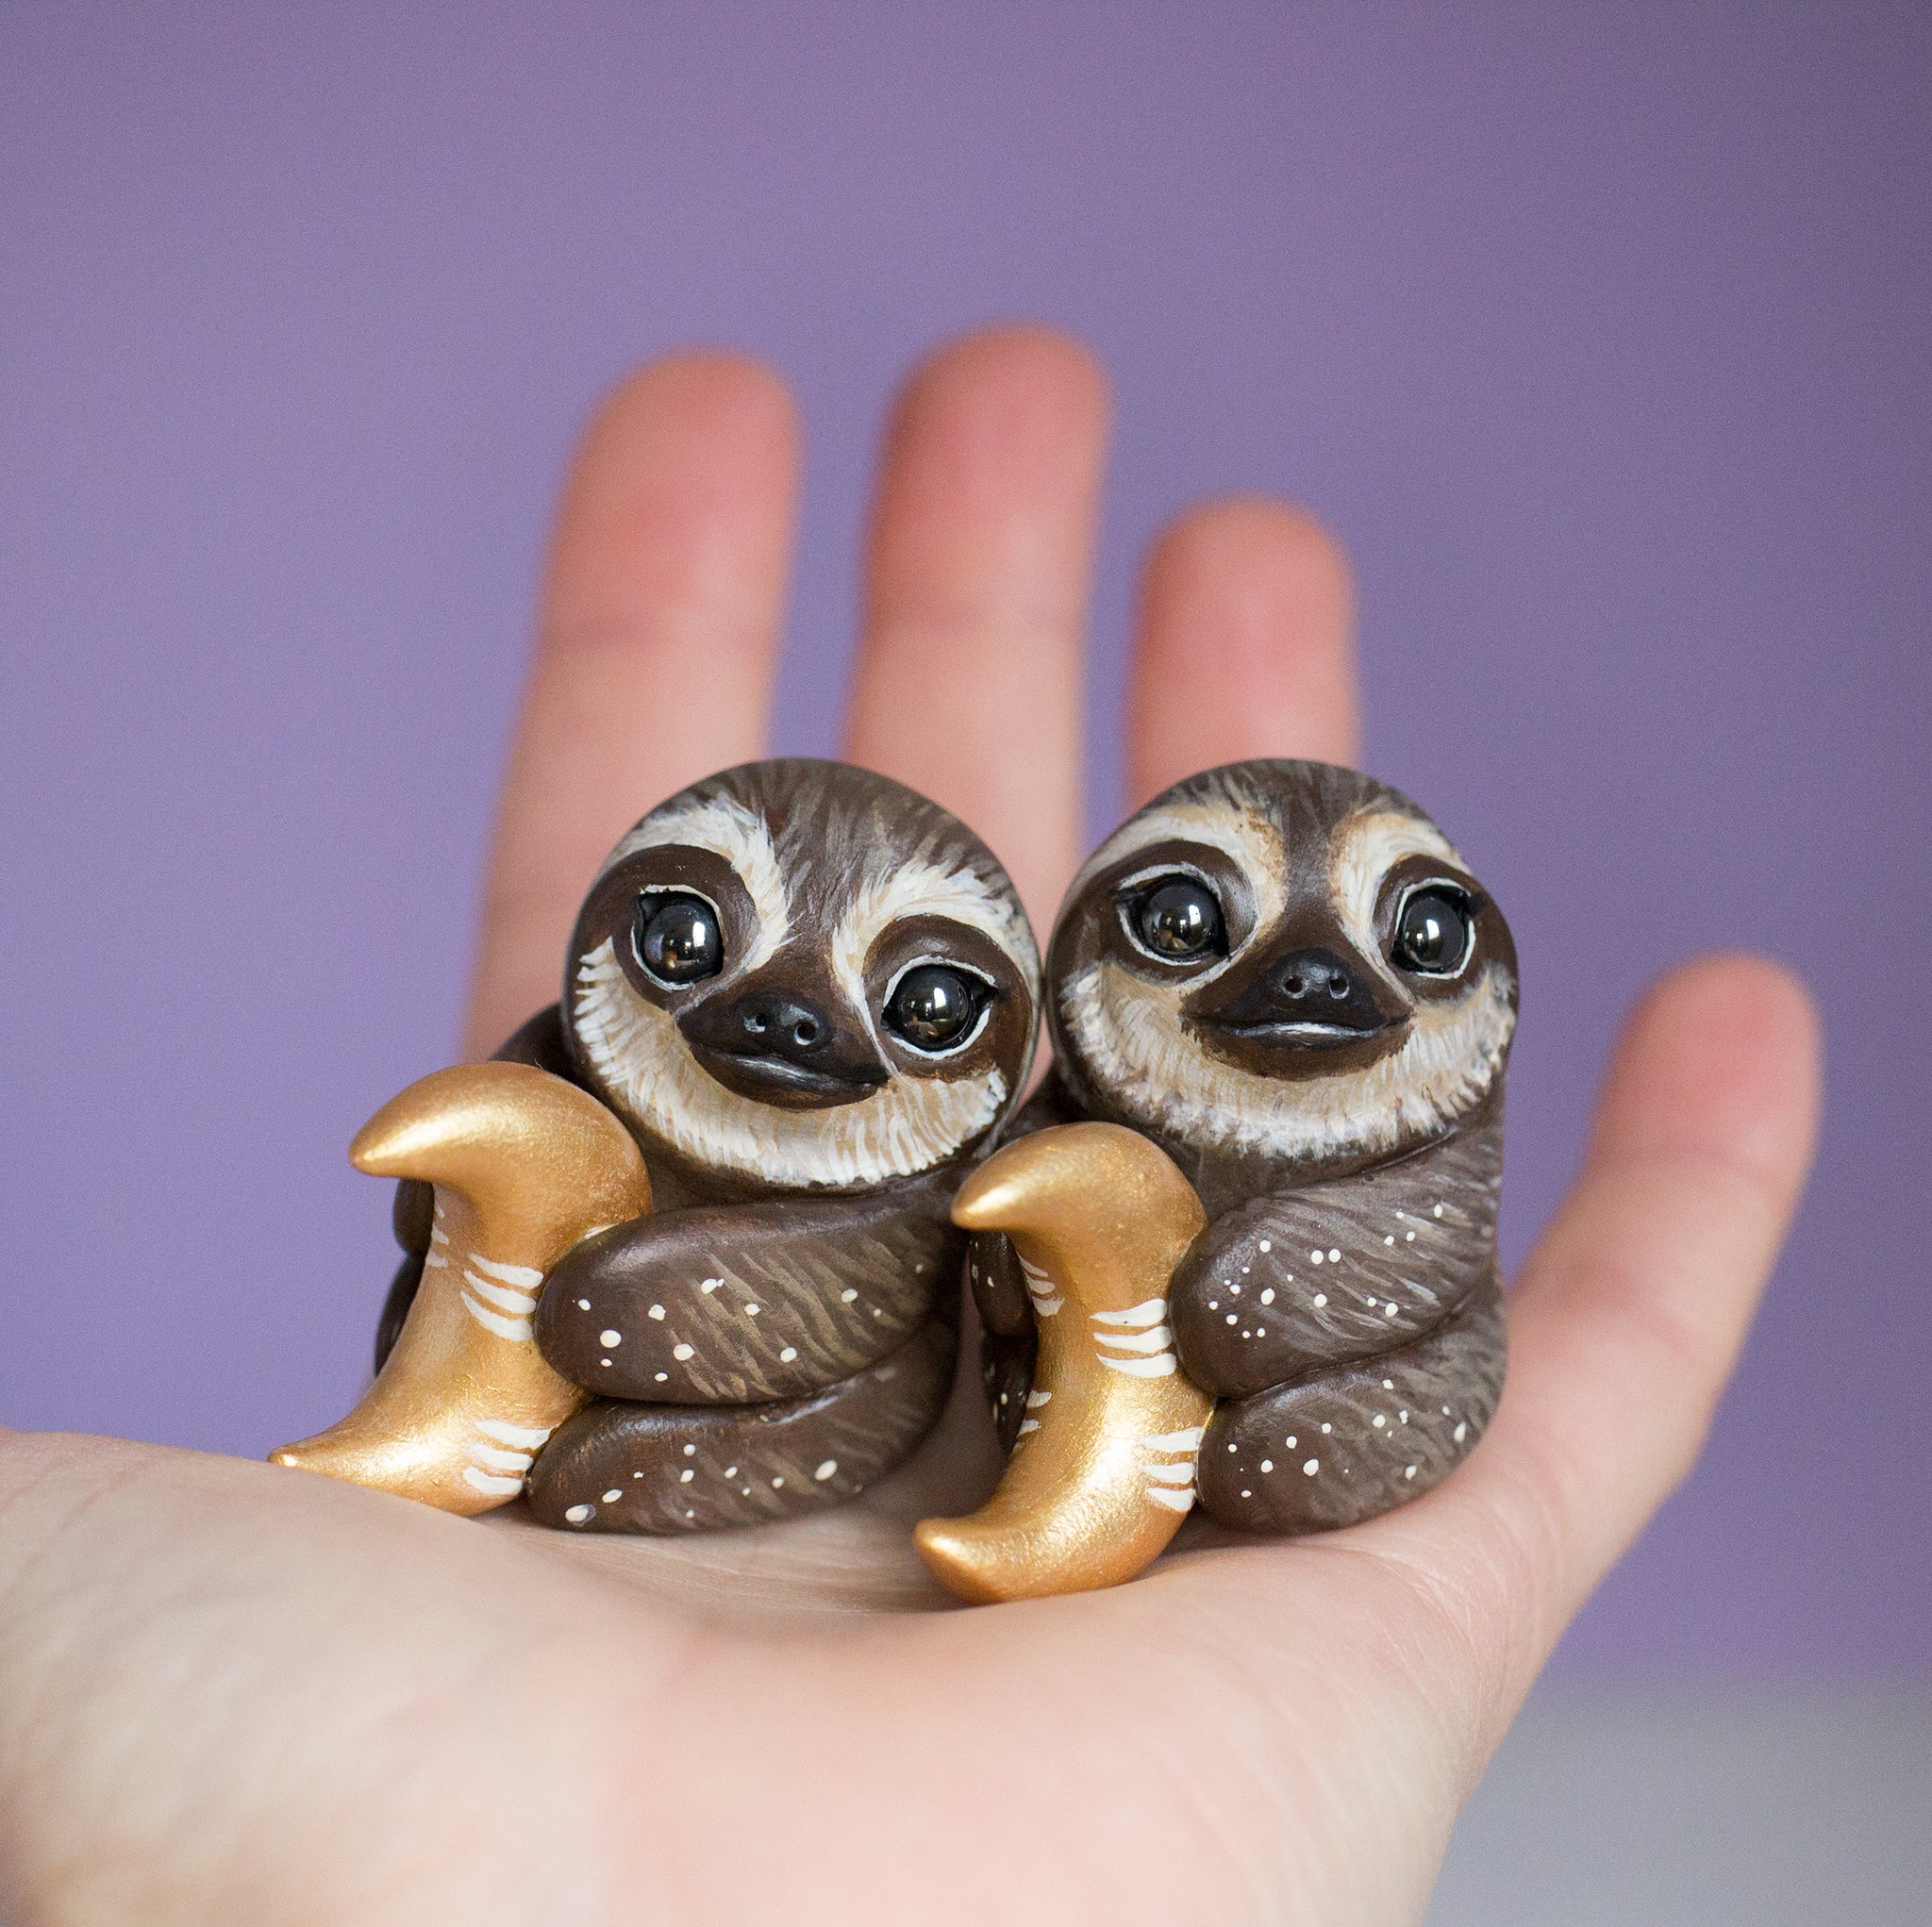 Moon sloth figurine